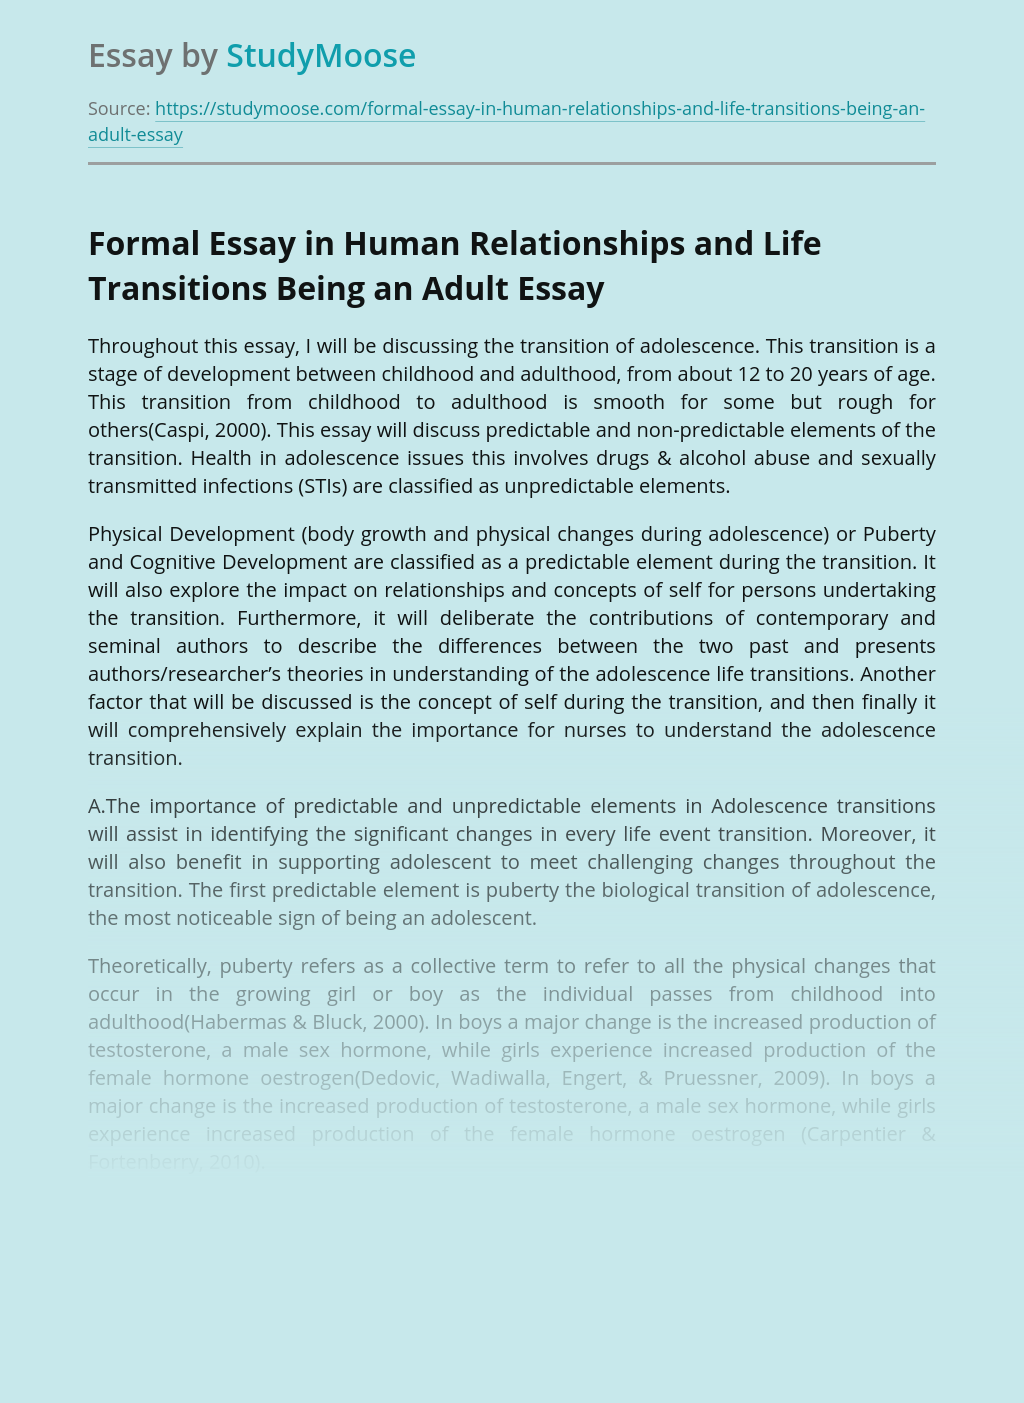 Formal Essay in Human Relationships and Life Transitions Being an Adult